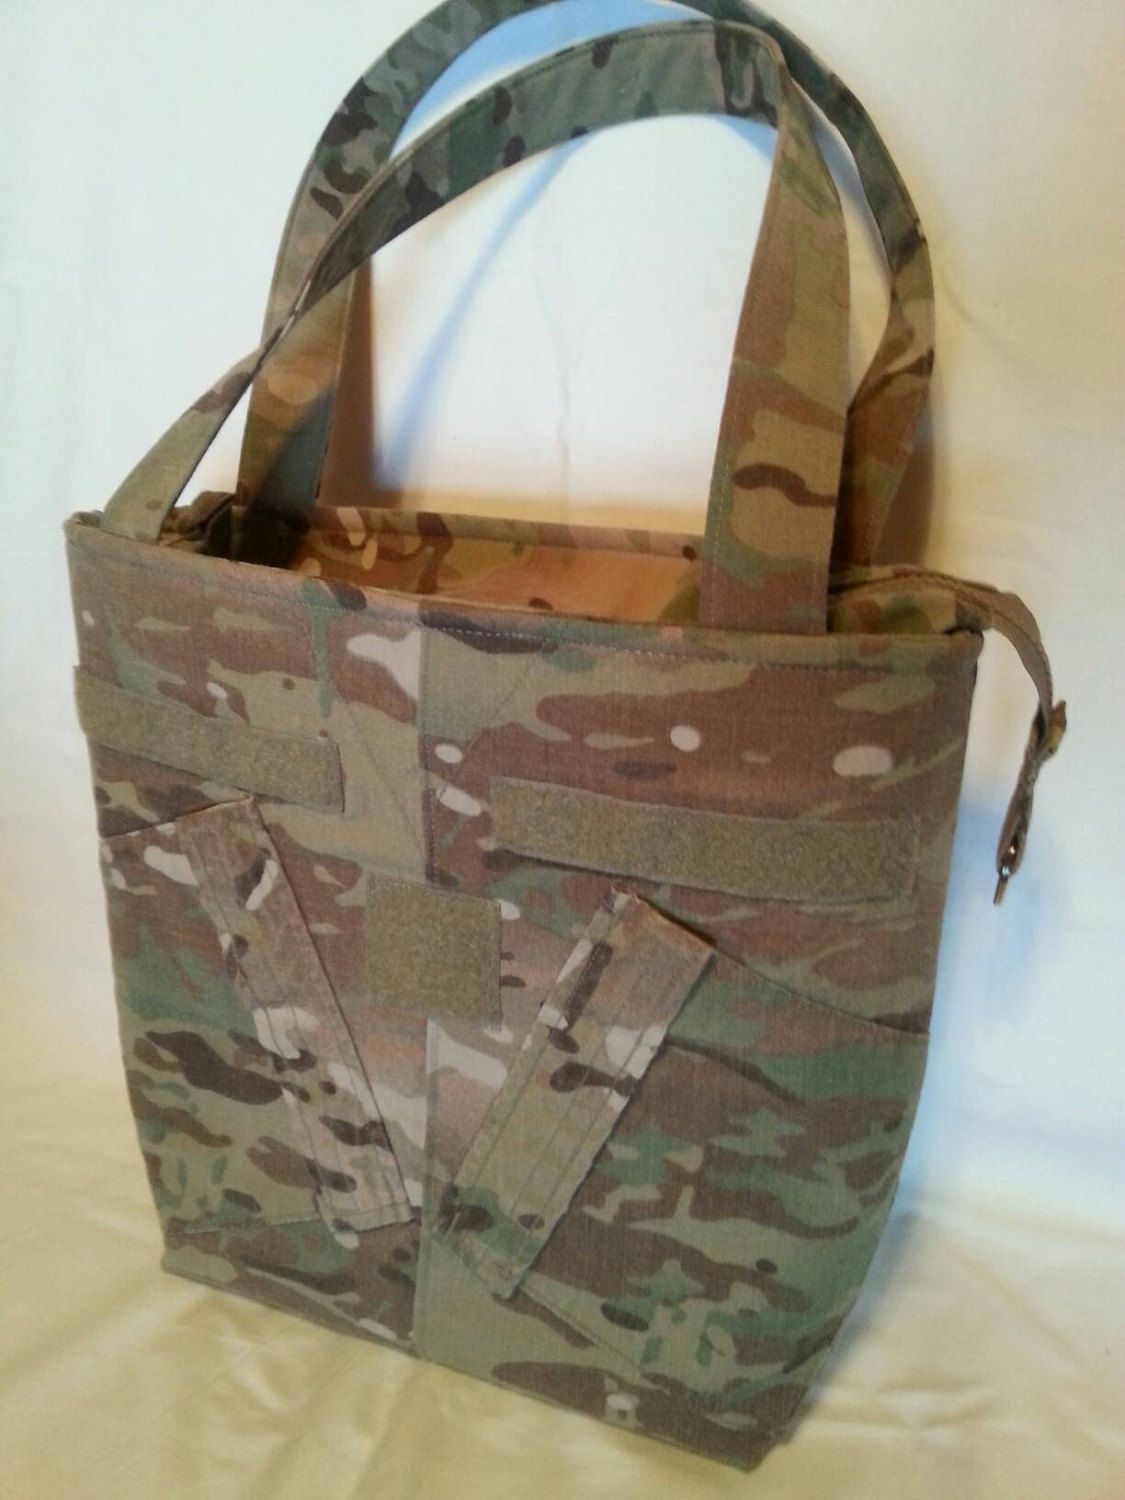 Multicam Army wife uniform purse free tags personlized your choice colors  for lining embroidery trims Army